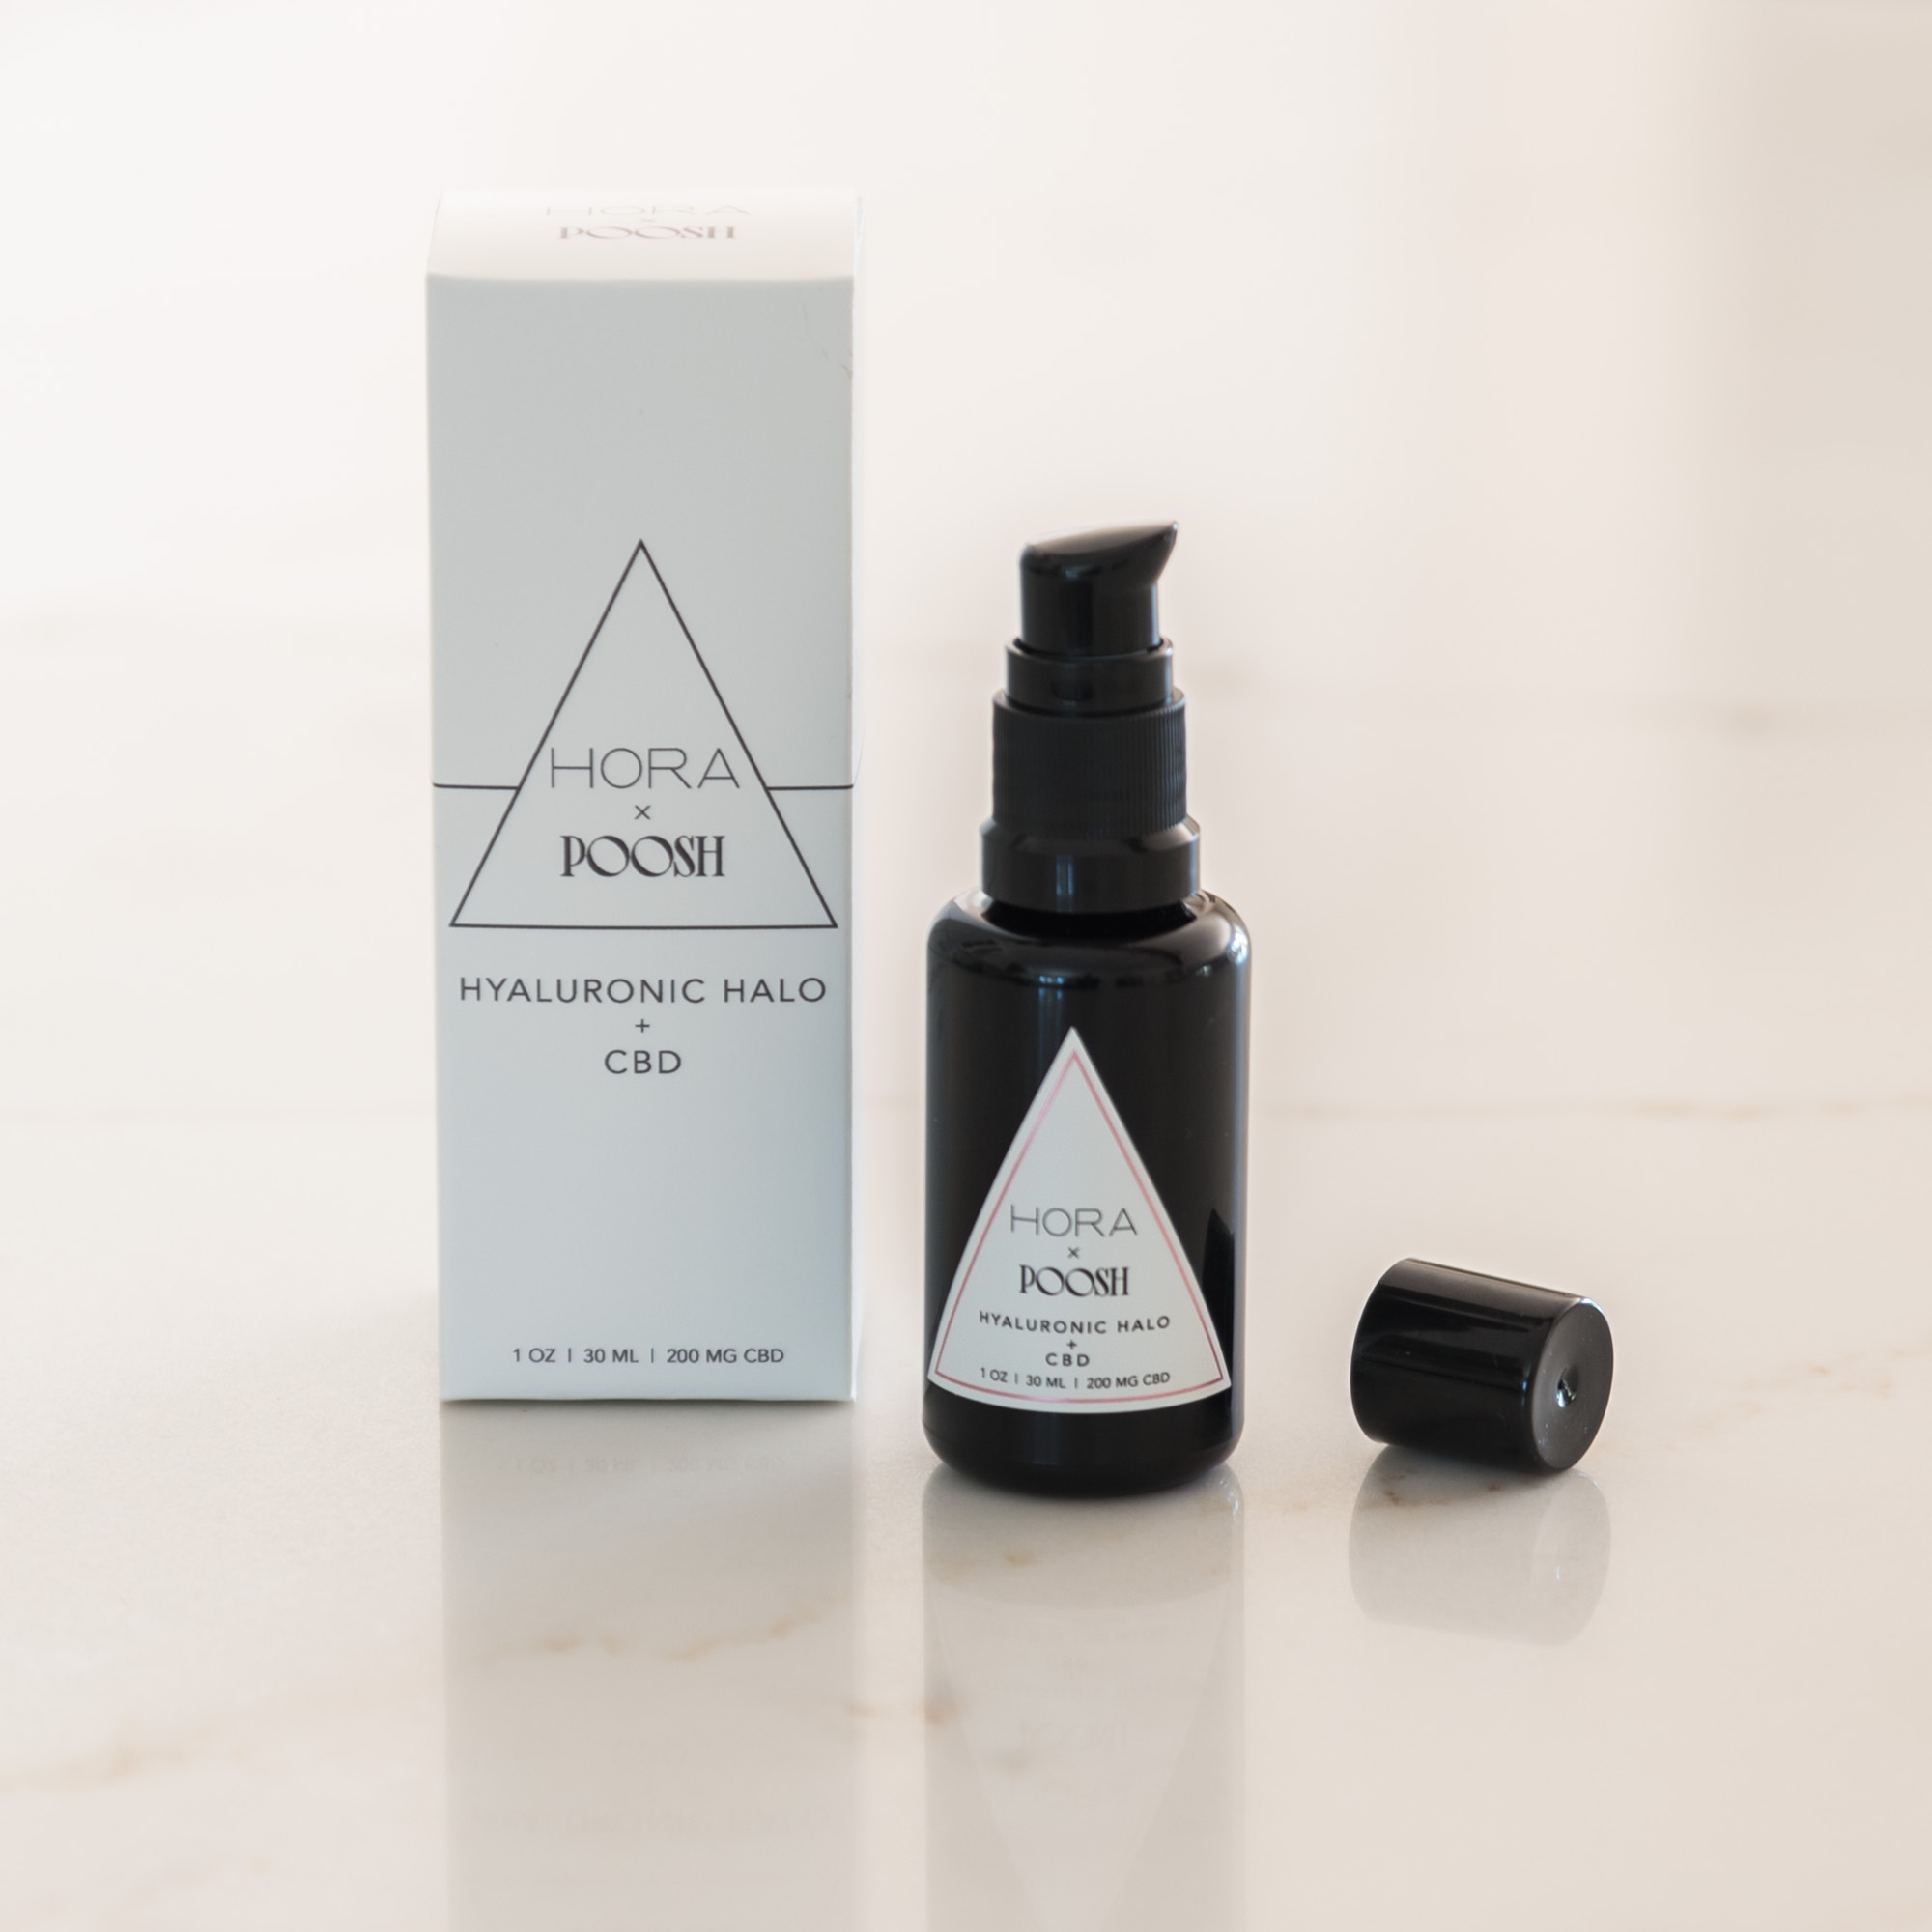 Hora x Poosh Hyaluronic Halo + CBD Serum